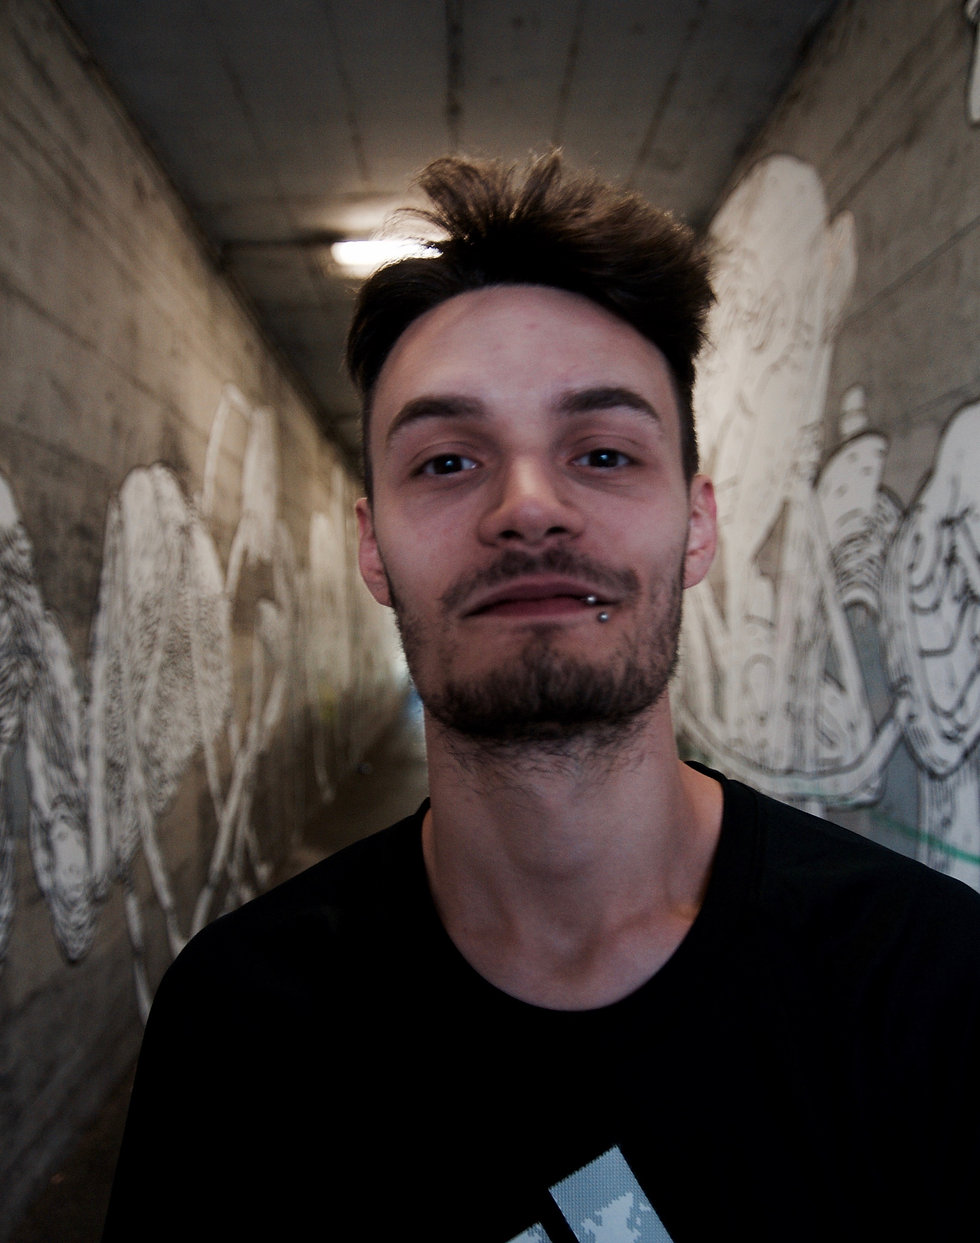 Psy-Tech and Minimal music from Verona, Italy. Exclusive Interview and Mix with Egomorph. Brought to you by Smelly Feet Records.